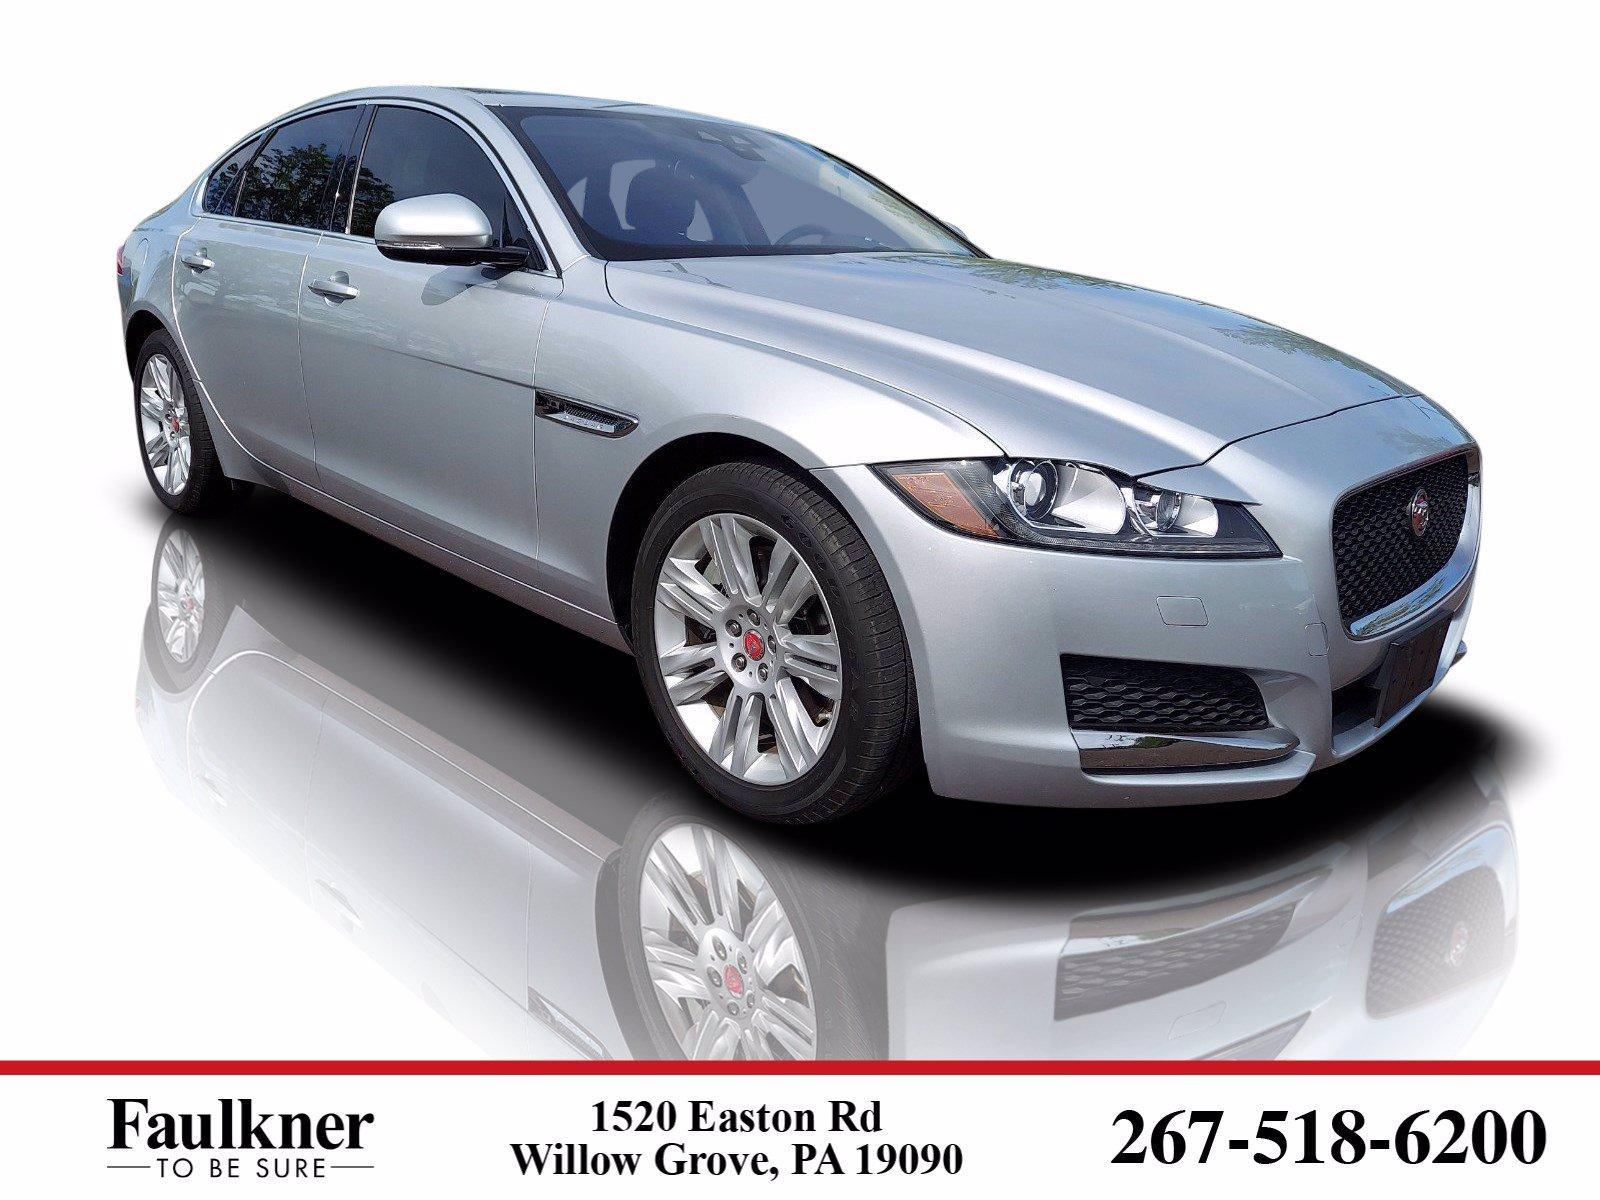 2017 Jaguar XF Vehicle Photo in Willow Grove, PA 19090